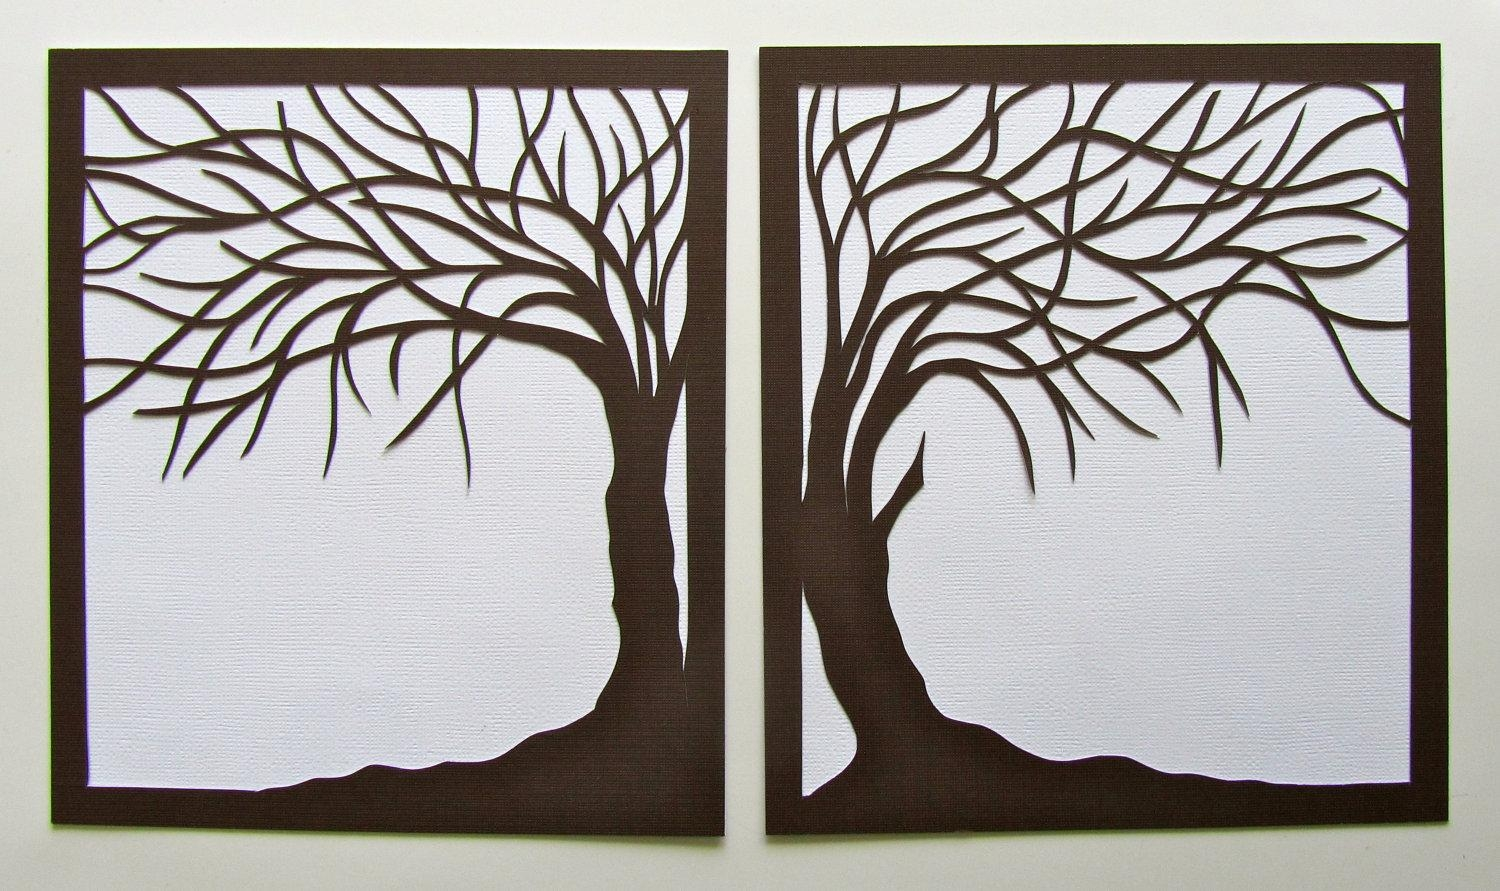 2 Trees Of Life Silhouette Paper Cut In Brown Over White Inside Celtic Tree Of Life Wall Art (View 19 of 20)